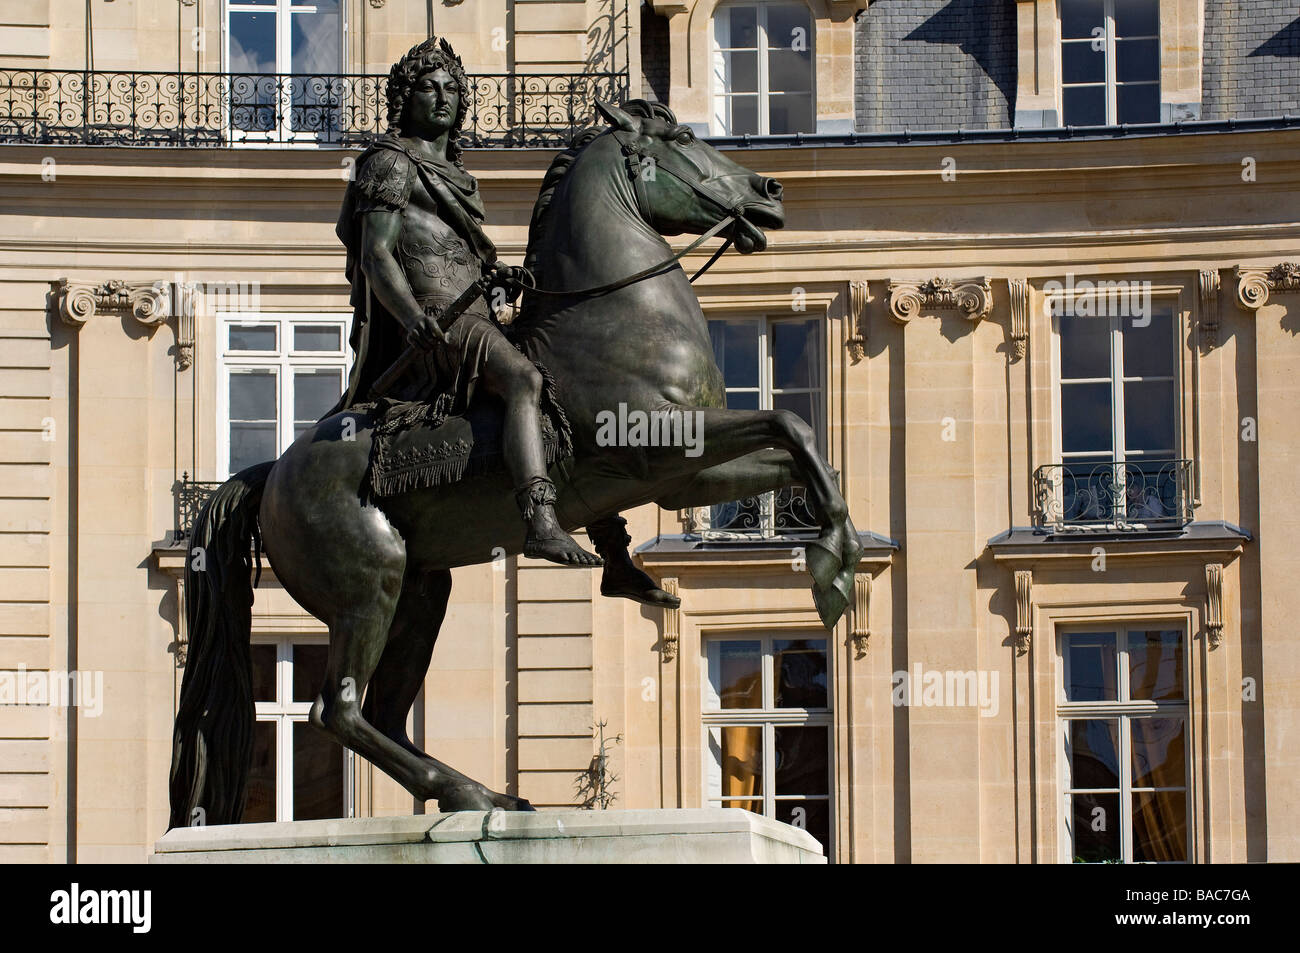 France paris place des victoires louis xiv equestrian statue stock photo royalty free image - Place des victoires metro ...